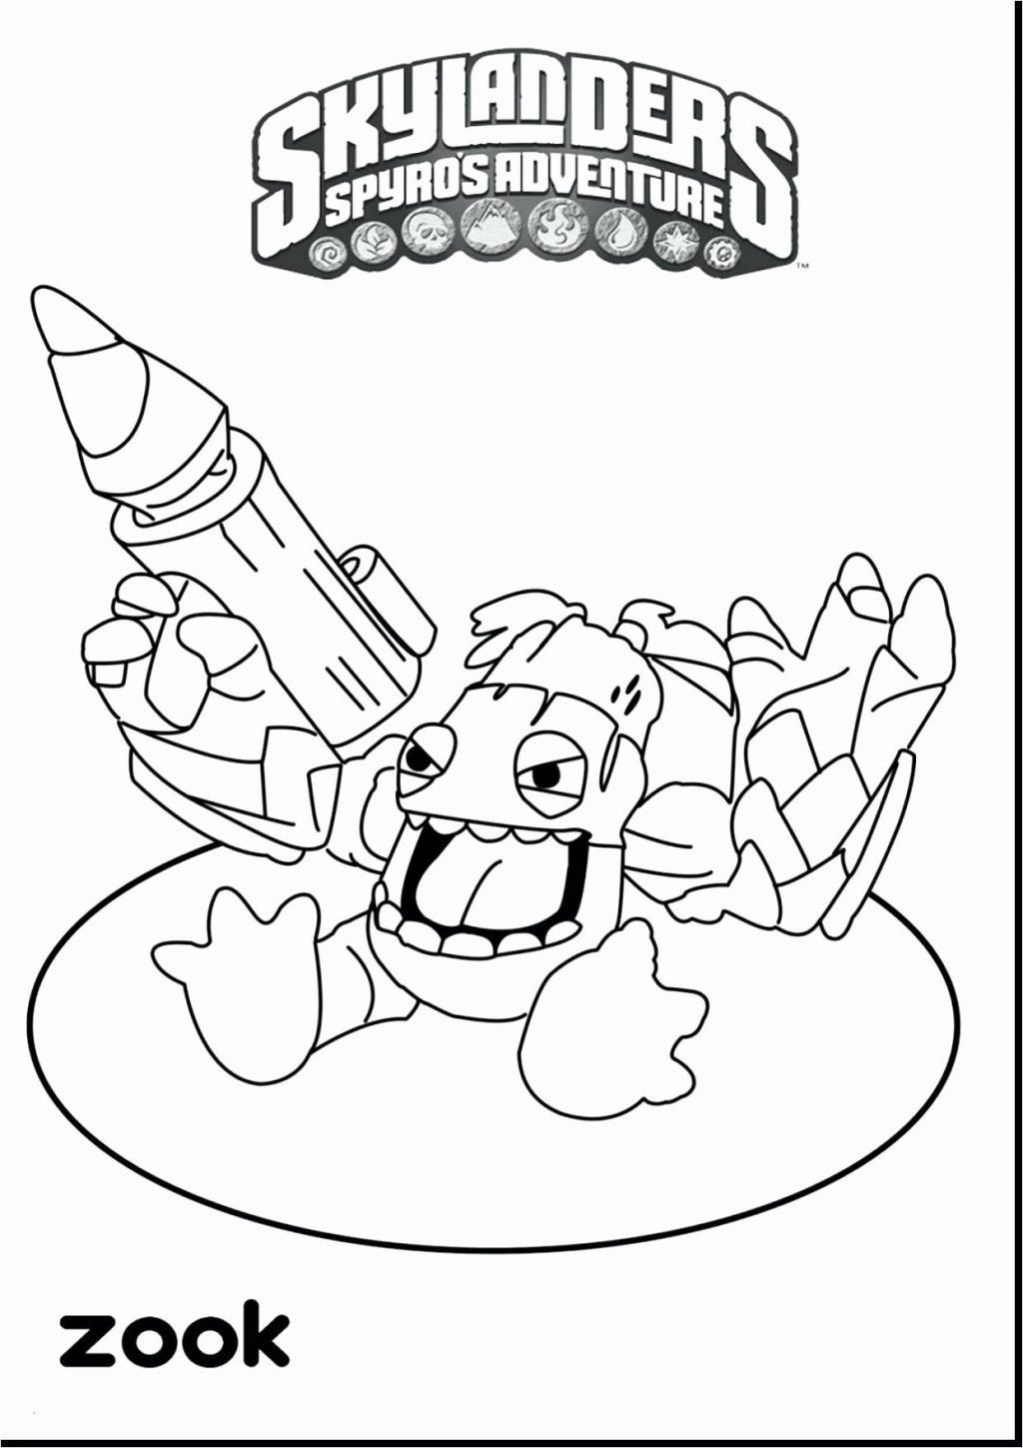 Anatomy Coloring Pages Netter Coloring Book Netters Anatomy ...